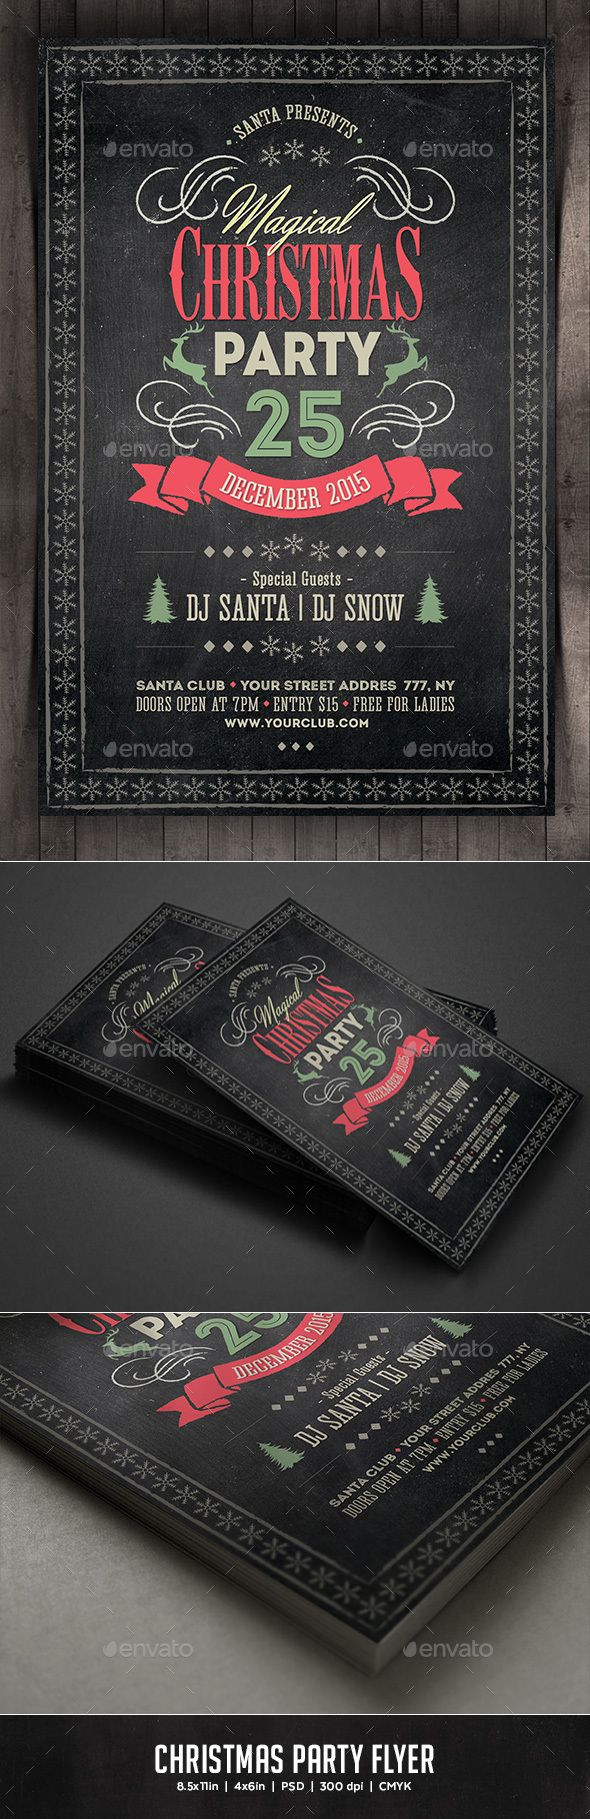 Christmas Party Flyer Template PSD #design #xmas Download: http://graphicriver.net/item/christmas-party-flyer/13477632?ref=ksioks